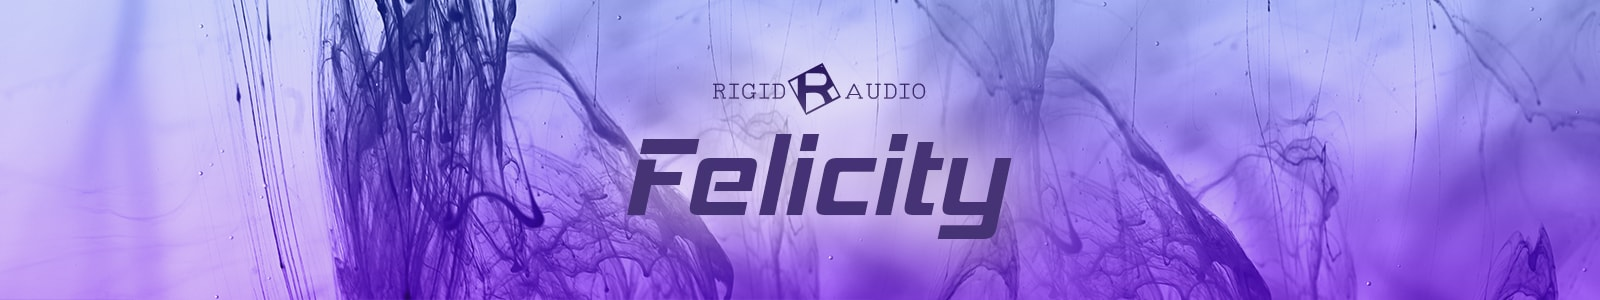 felicity by rigid audio